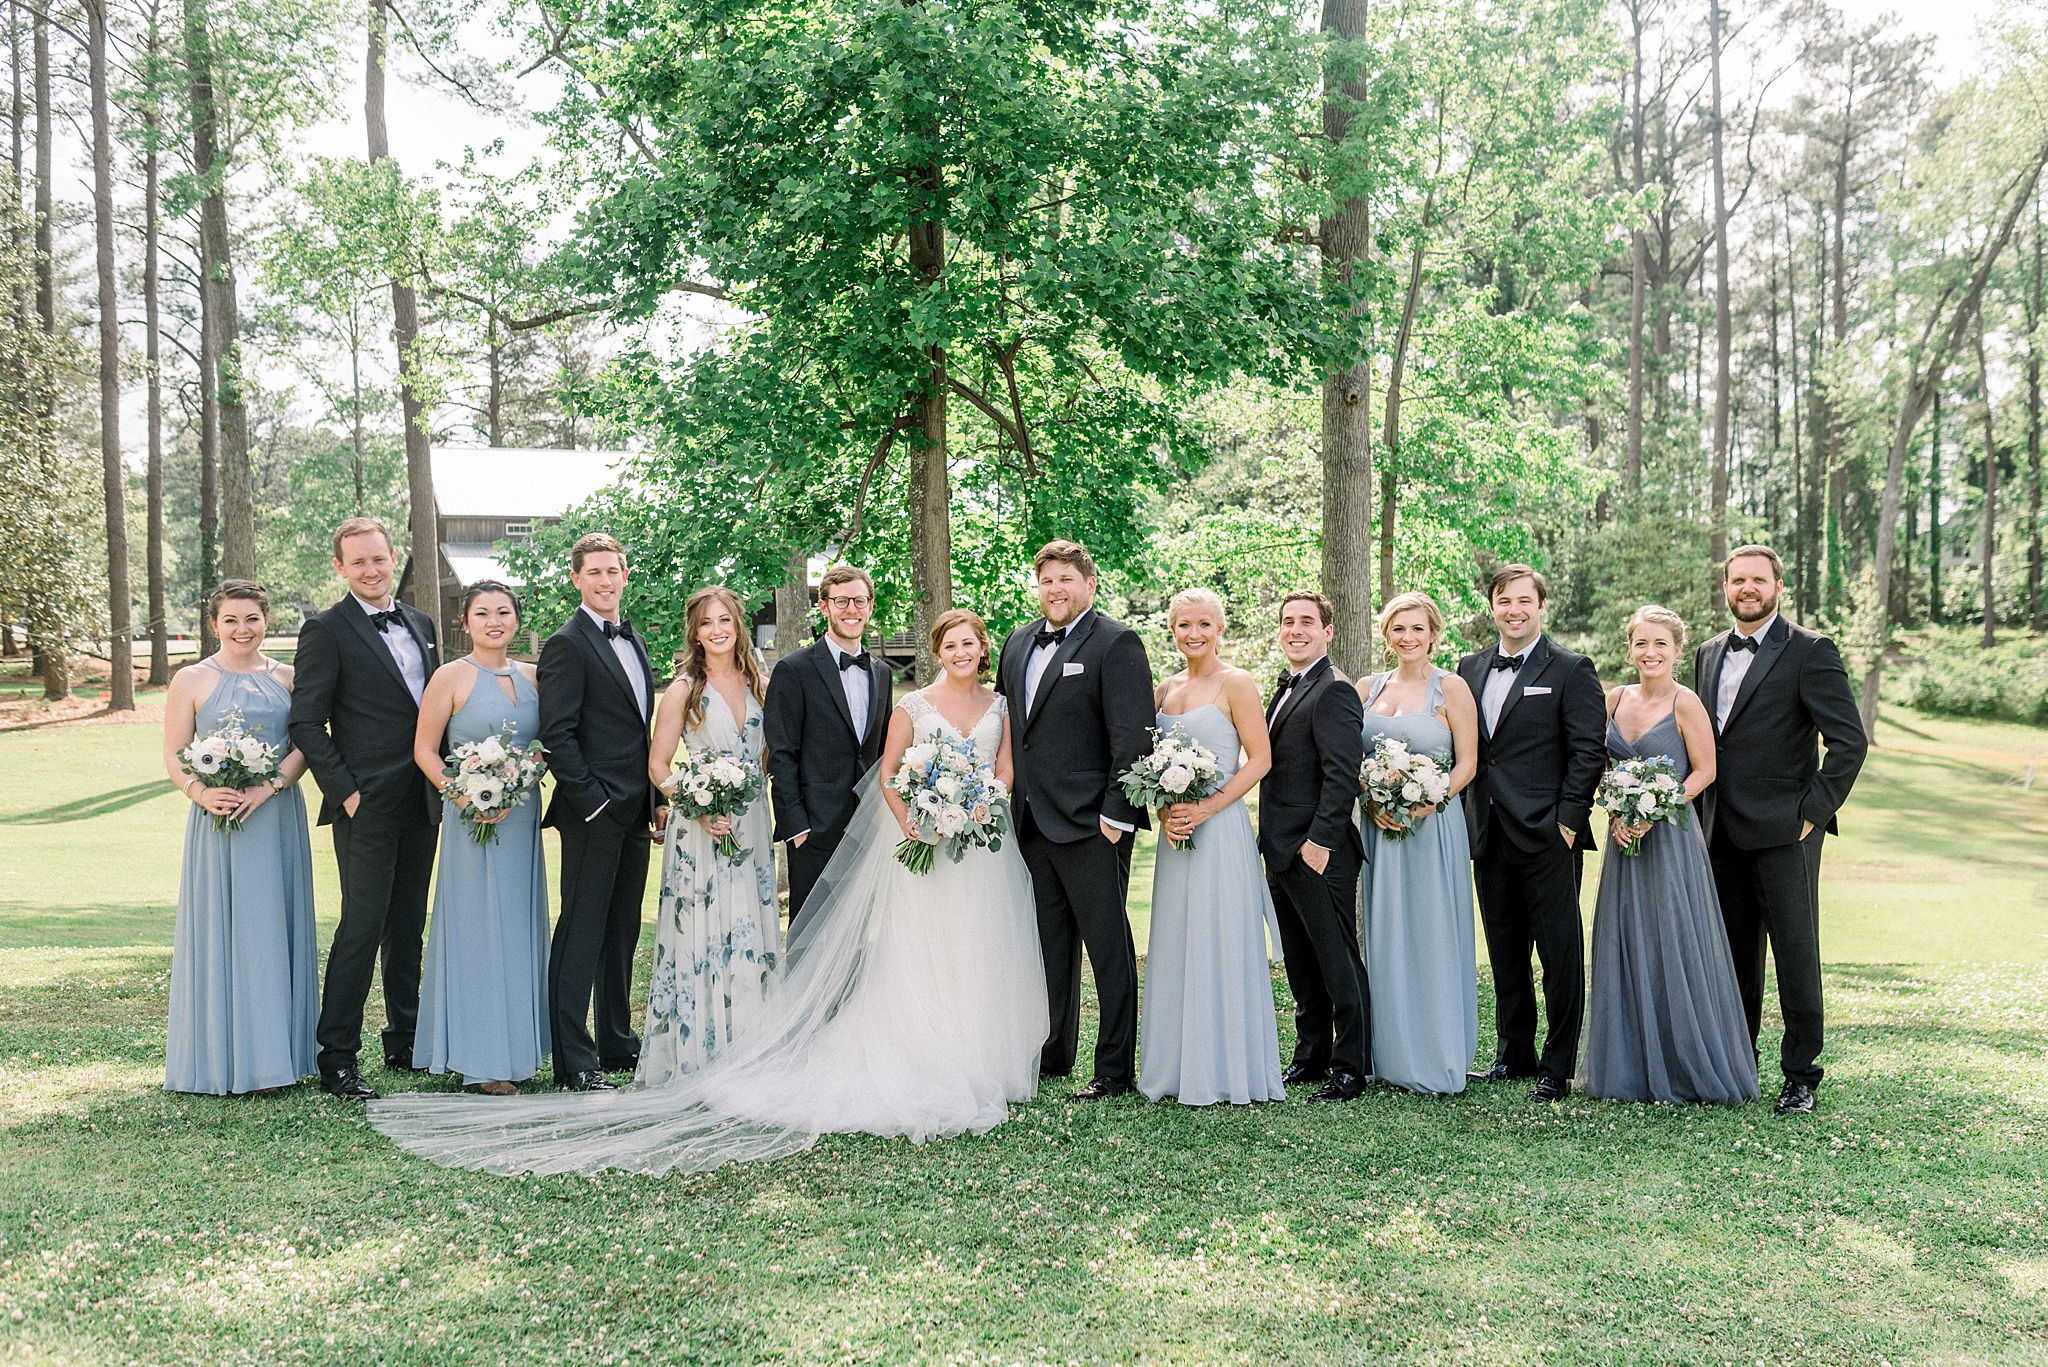 copperridgeontheneusewedding_0022.jpg